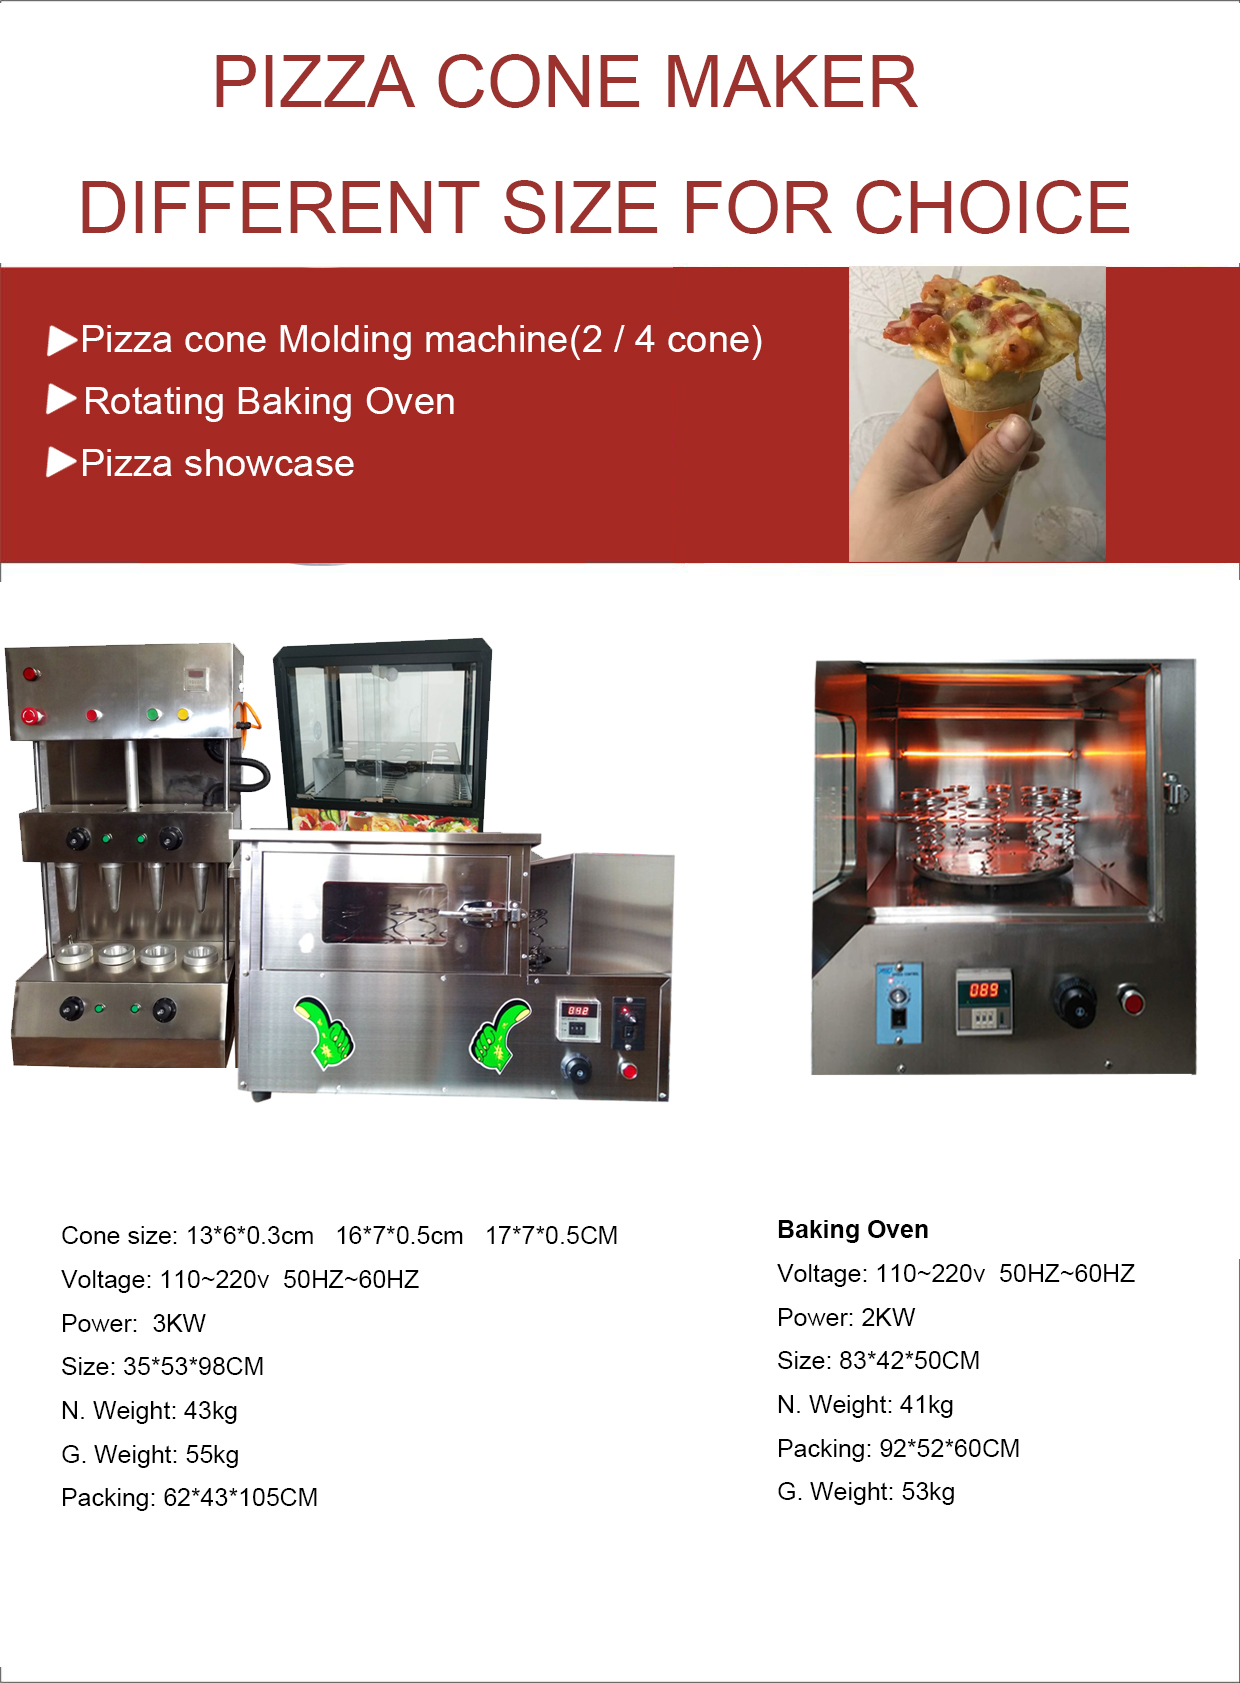 Automatic Incense Sugar Icecream Wafer Pizza Cone Press Making Machine Kono Maker Price Oven for Sale Warmer Showcase